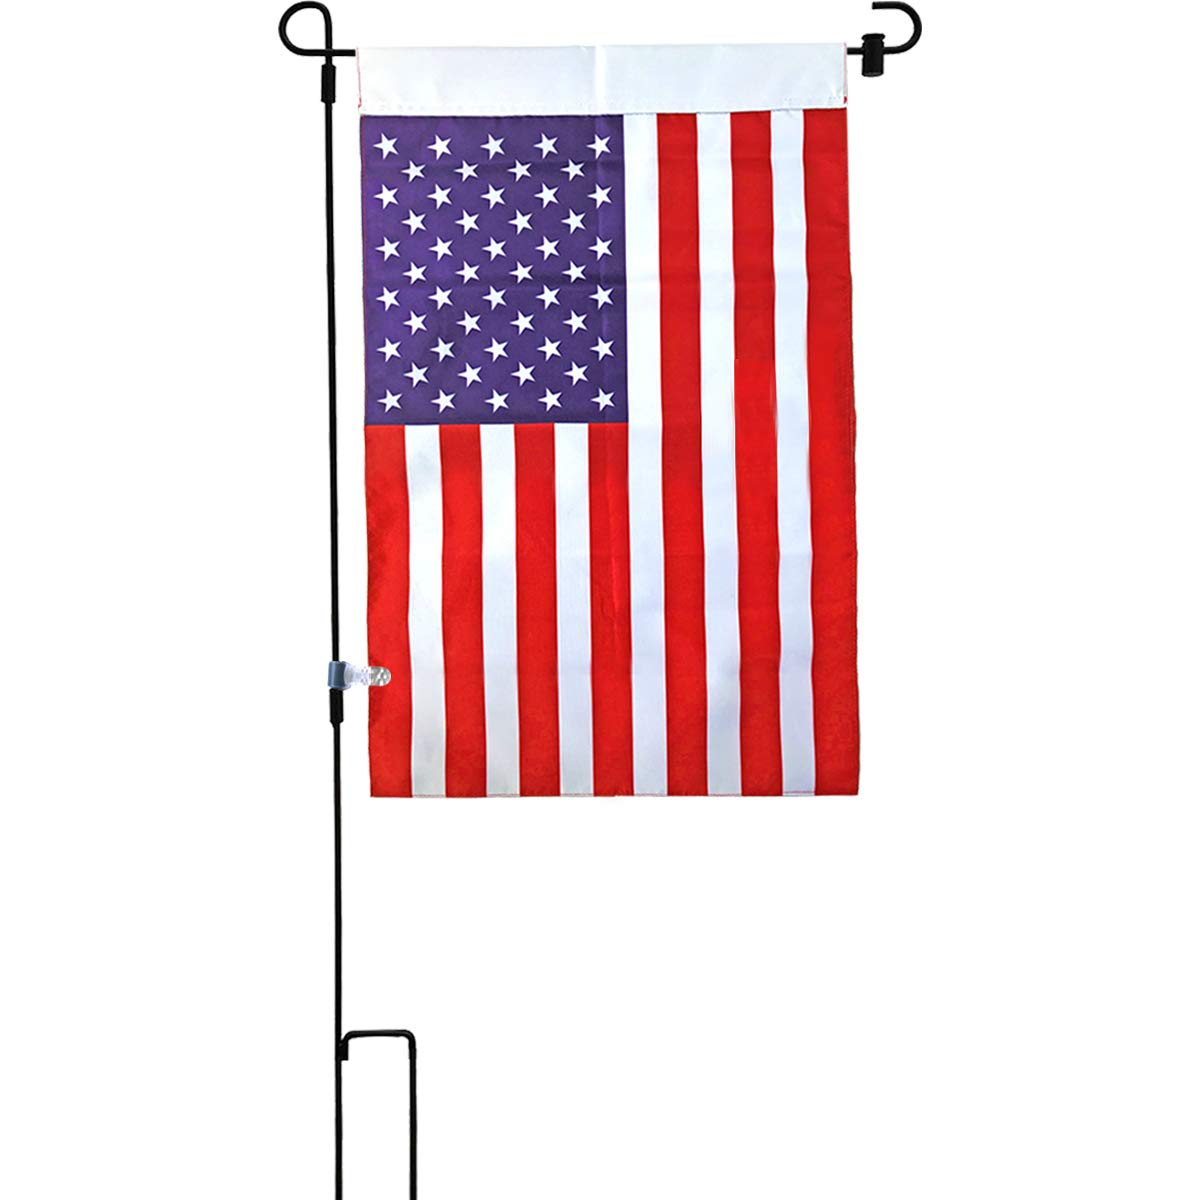 W&X Garden Flag Stand with American Flag Garden Flag,Anti-Wind Clip,Stopper,Waterproof 2 Sided 12.5x20 Inch Patriotic American Flag Banner Keep Your Flags from Flying Away in High Winds